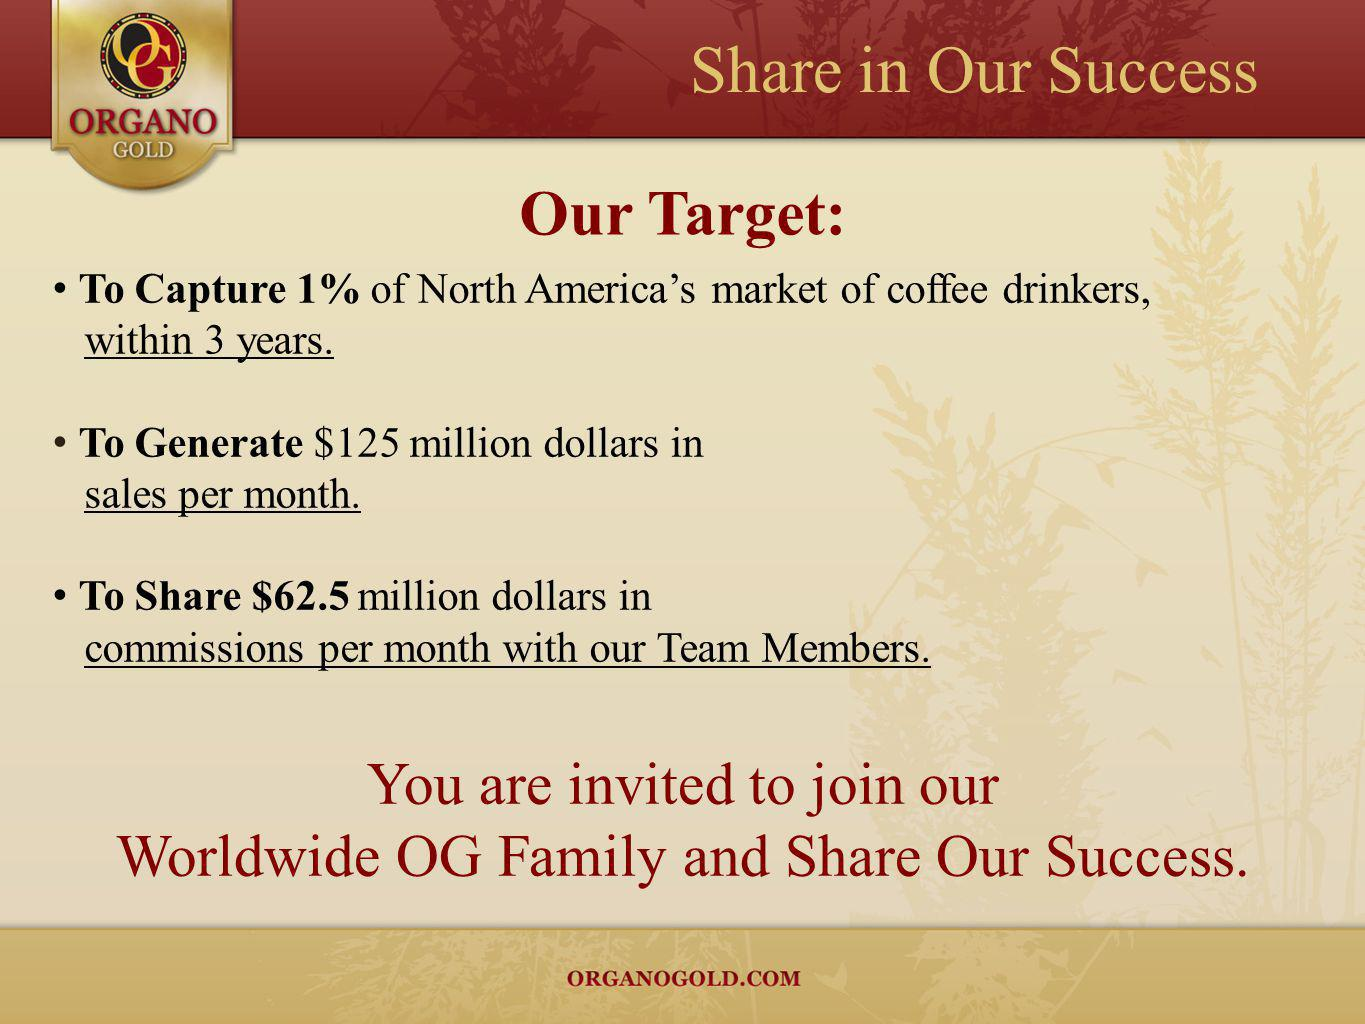 Our Target: To Capture 1% of North Americas market of coffee drinkers, within 3 years. To Generate $125 million dollars in sales per month. To Share $